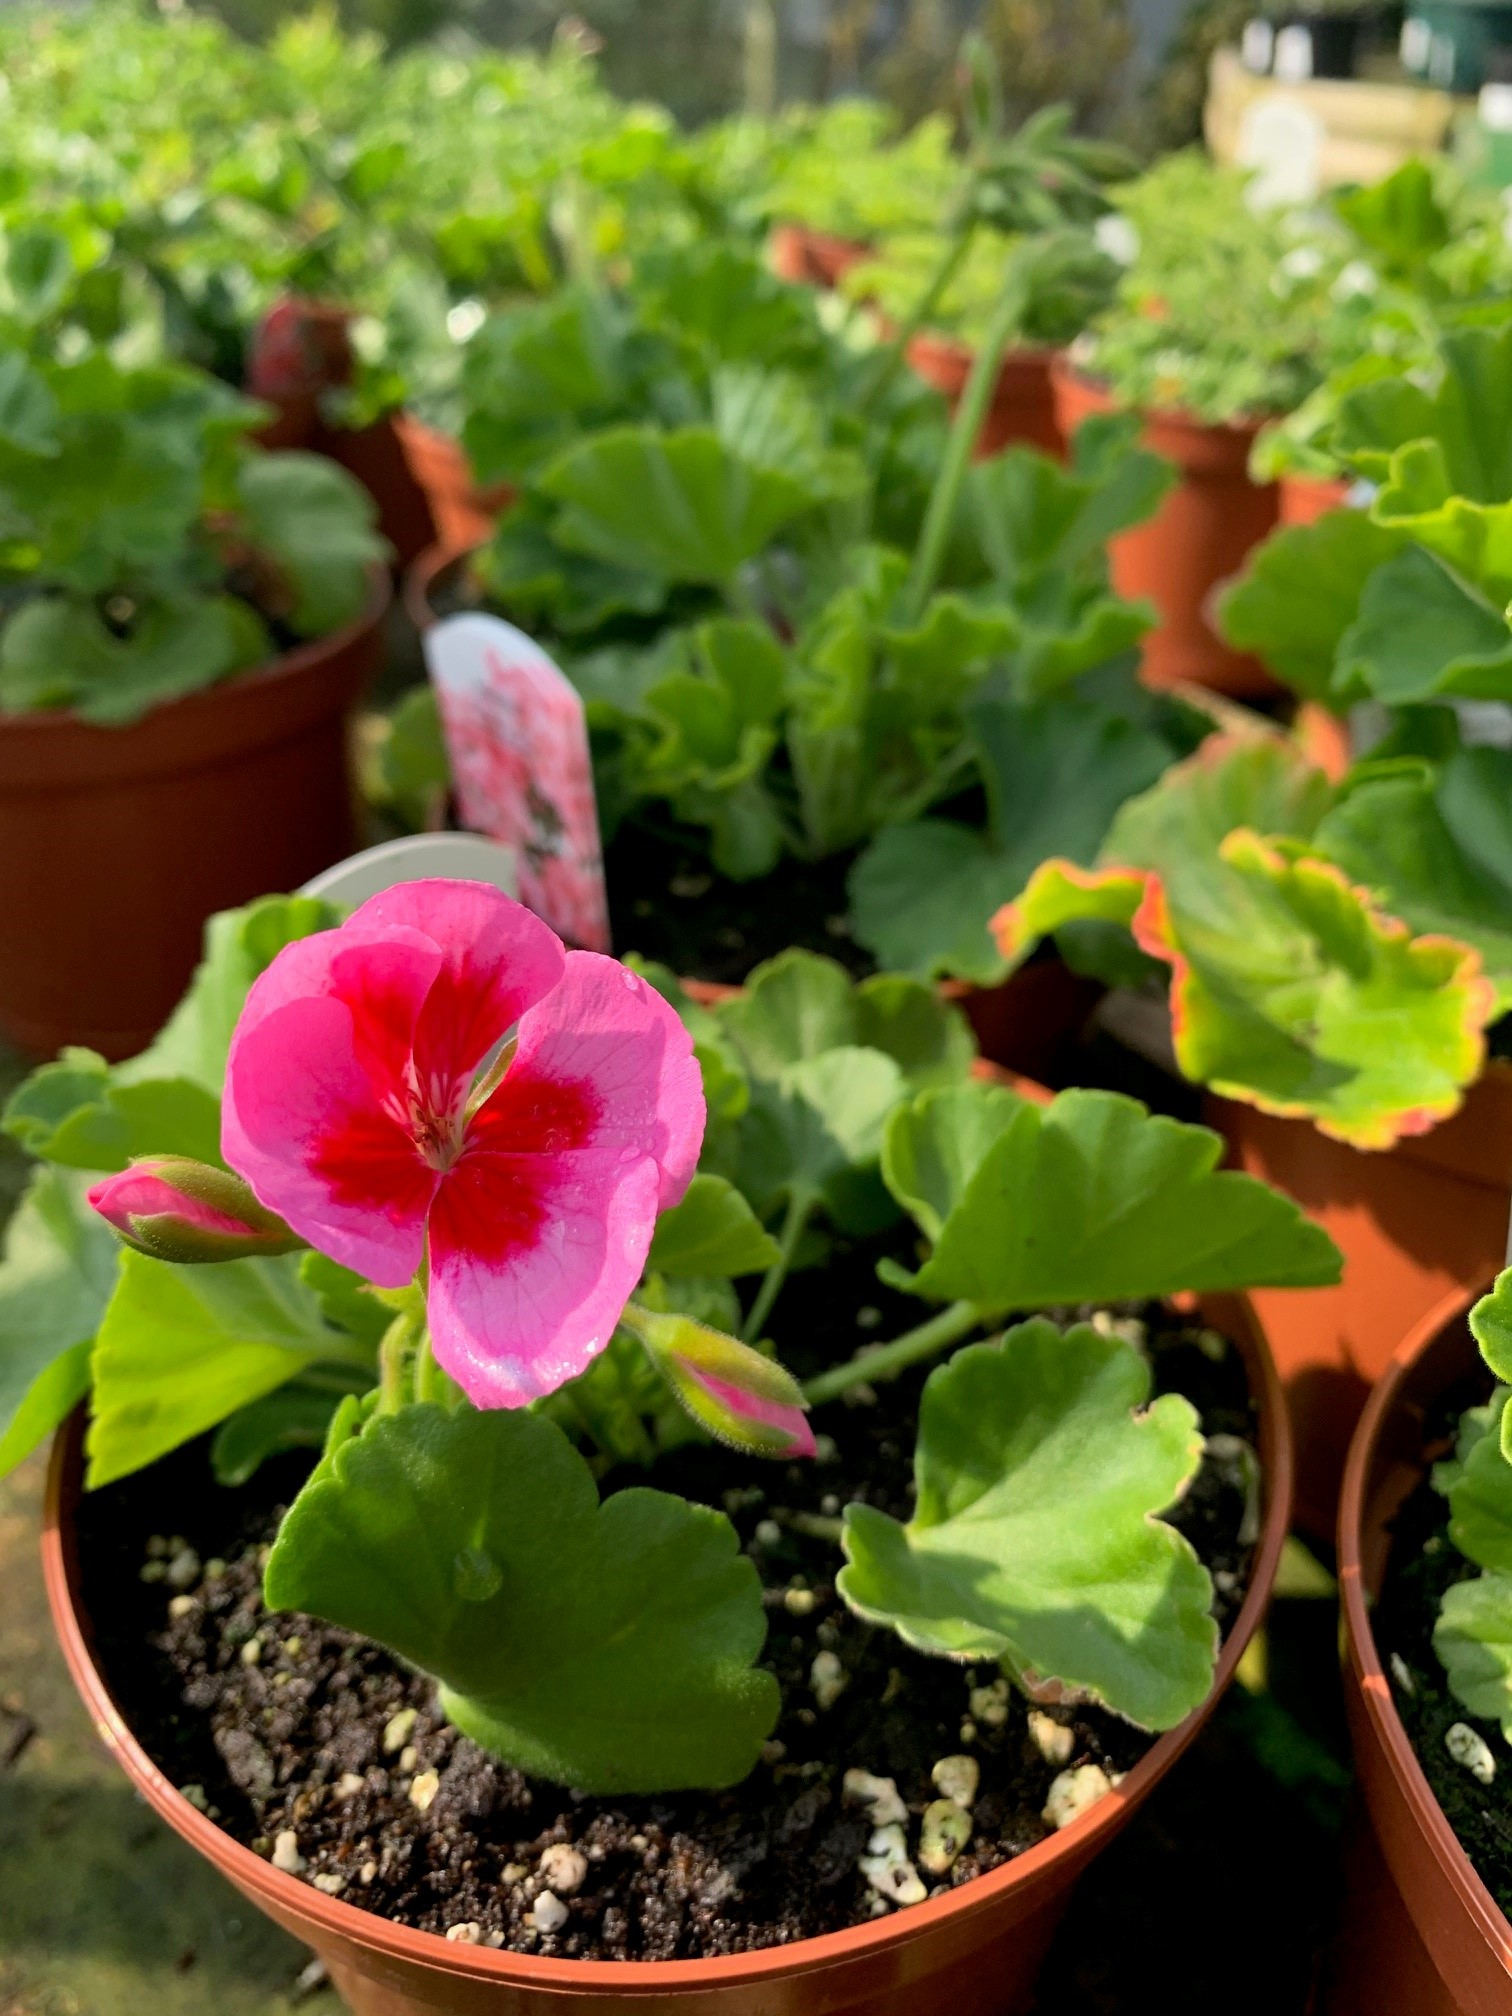 Patio plants - Geranium at Trevena Cross